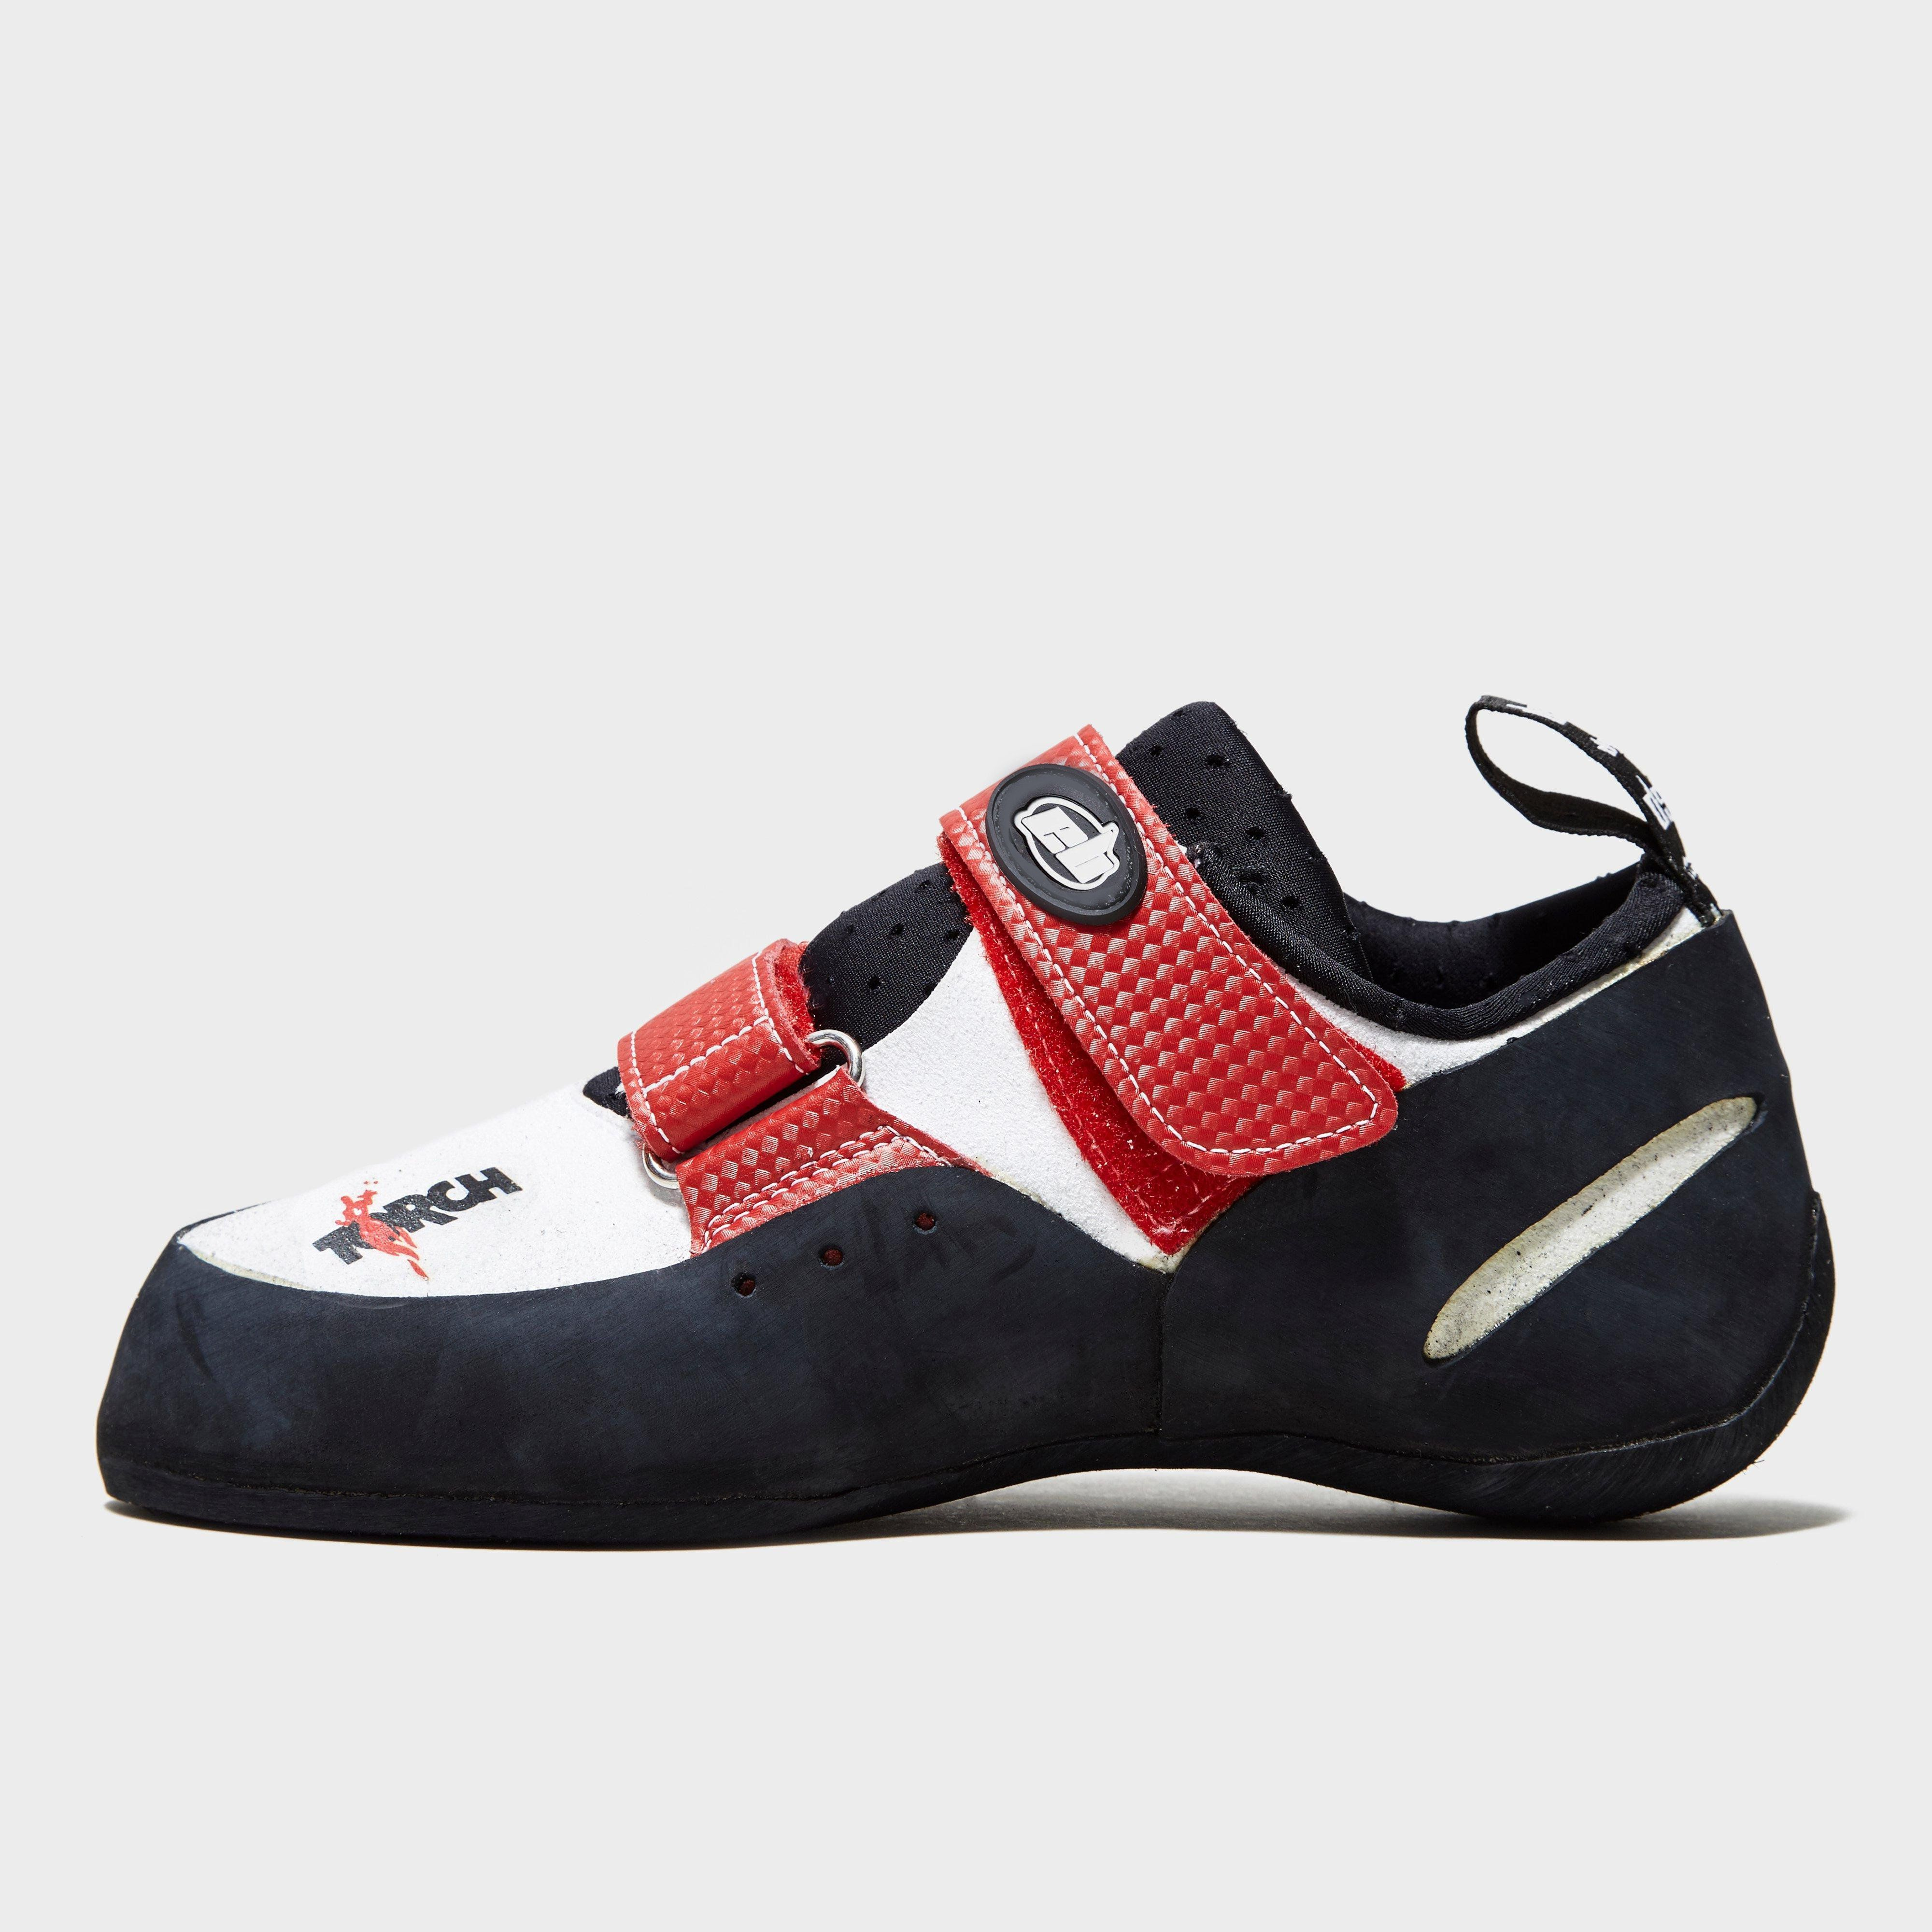 EB CLIMBING Torch Climbing Shoes